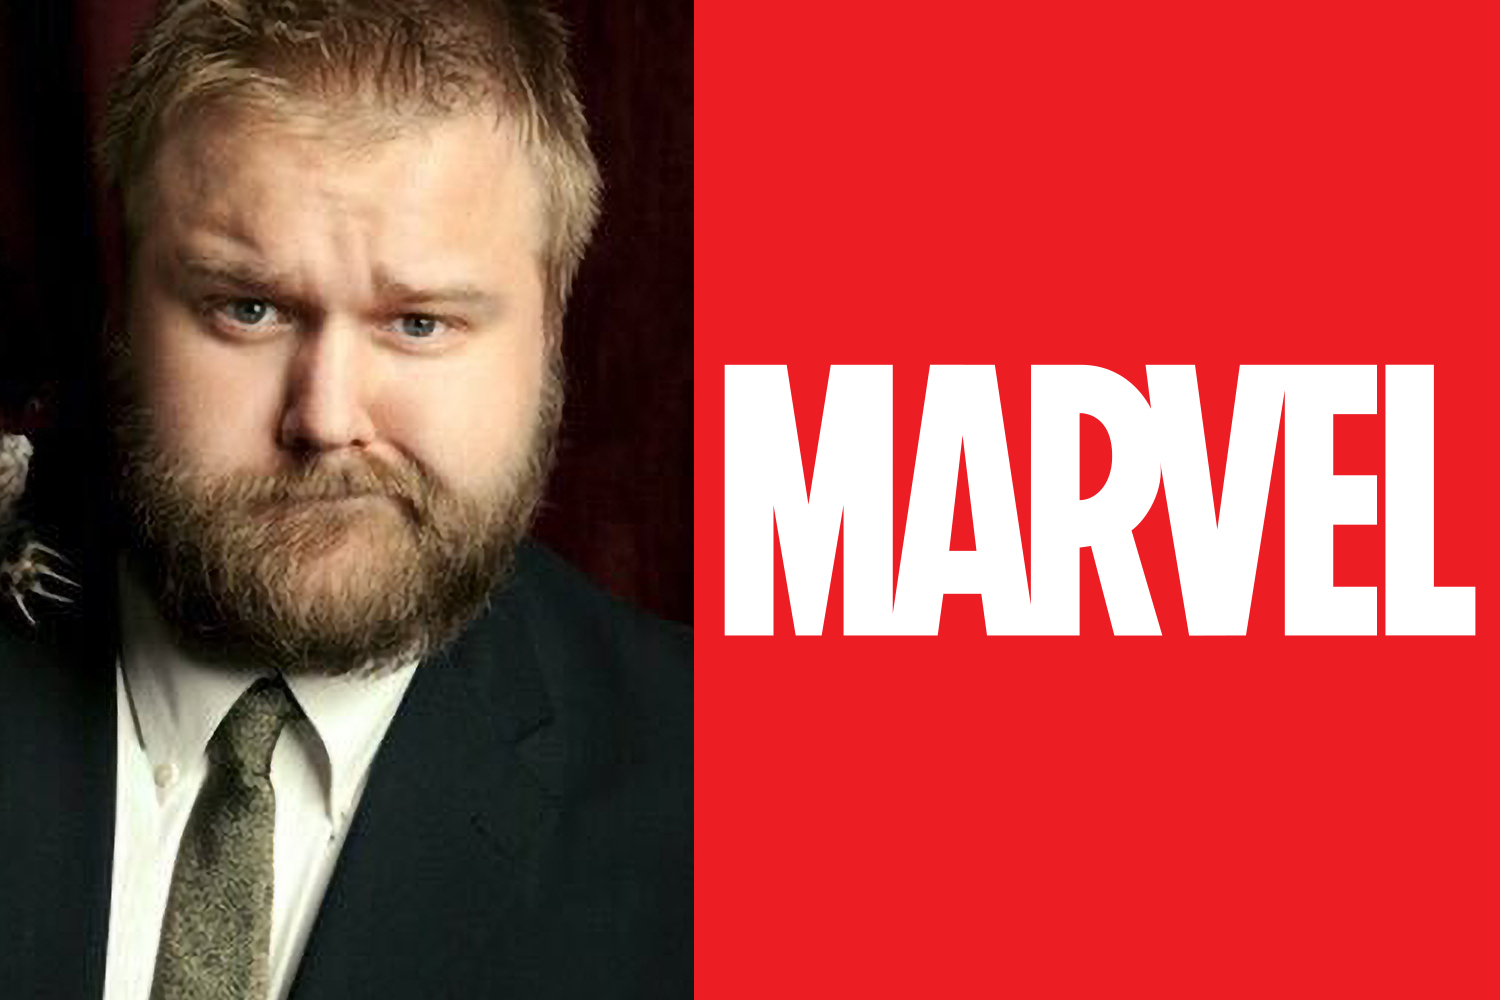 Robert Kirkman explains Marvel 'resented the fact that I didn't need them.'